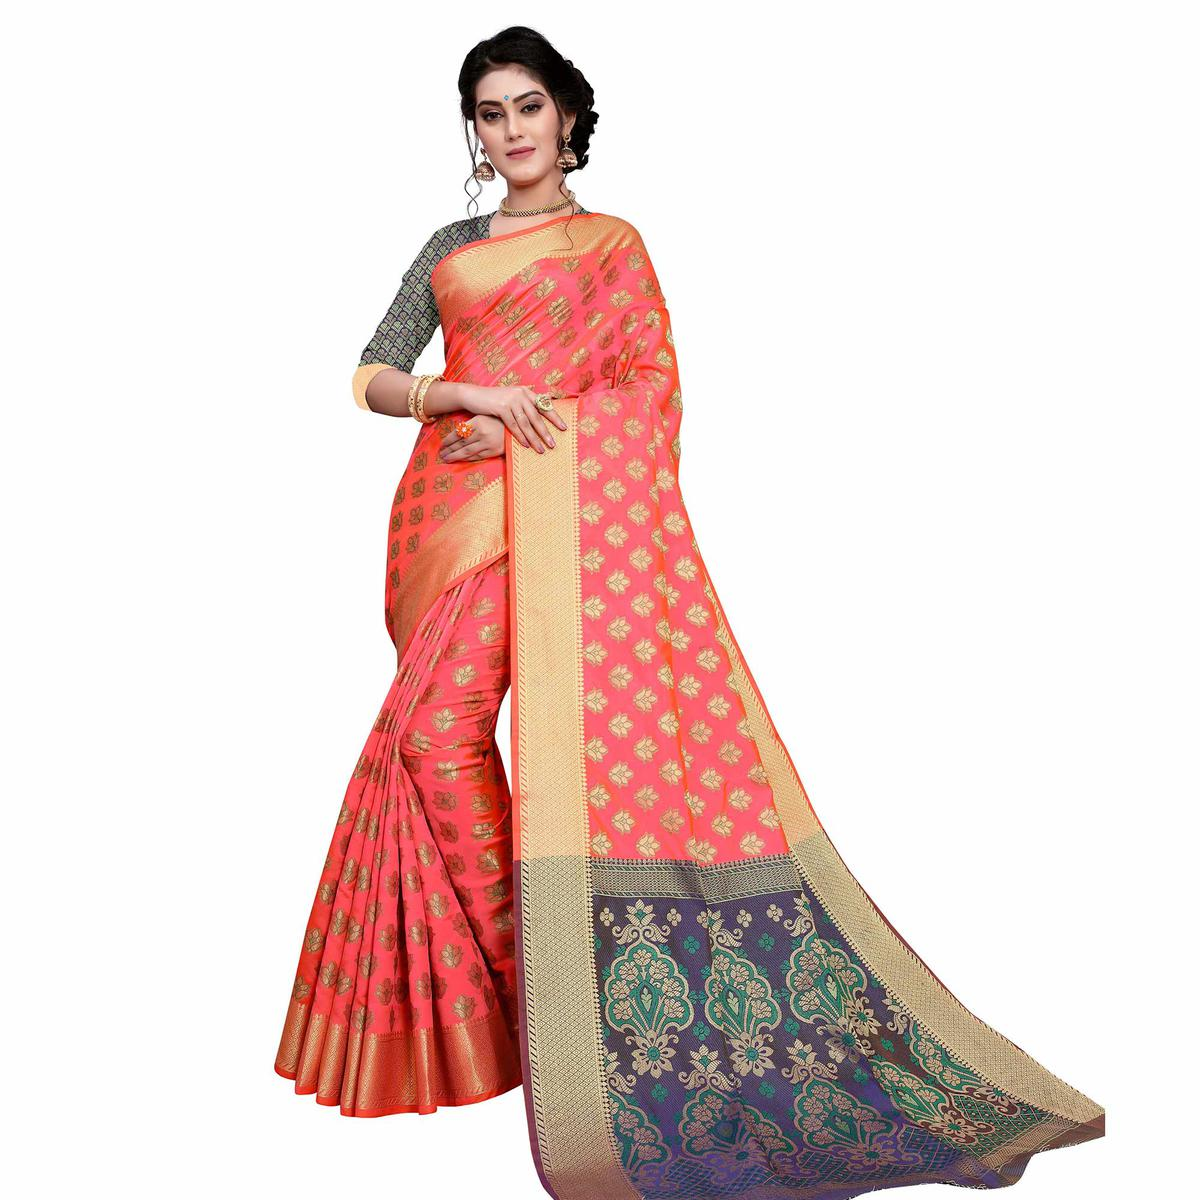 Blissful Peach Colored Festive Wear Woven Art Silk Saree